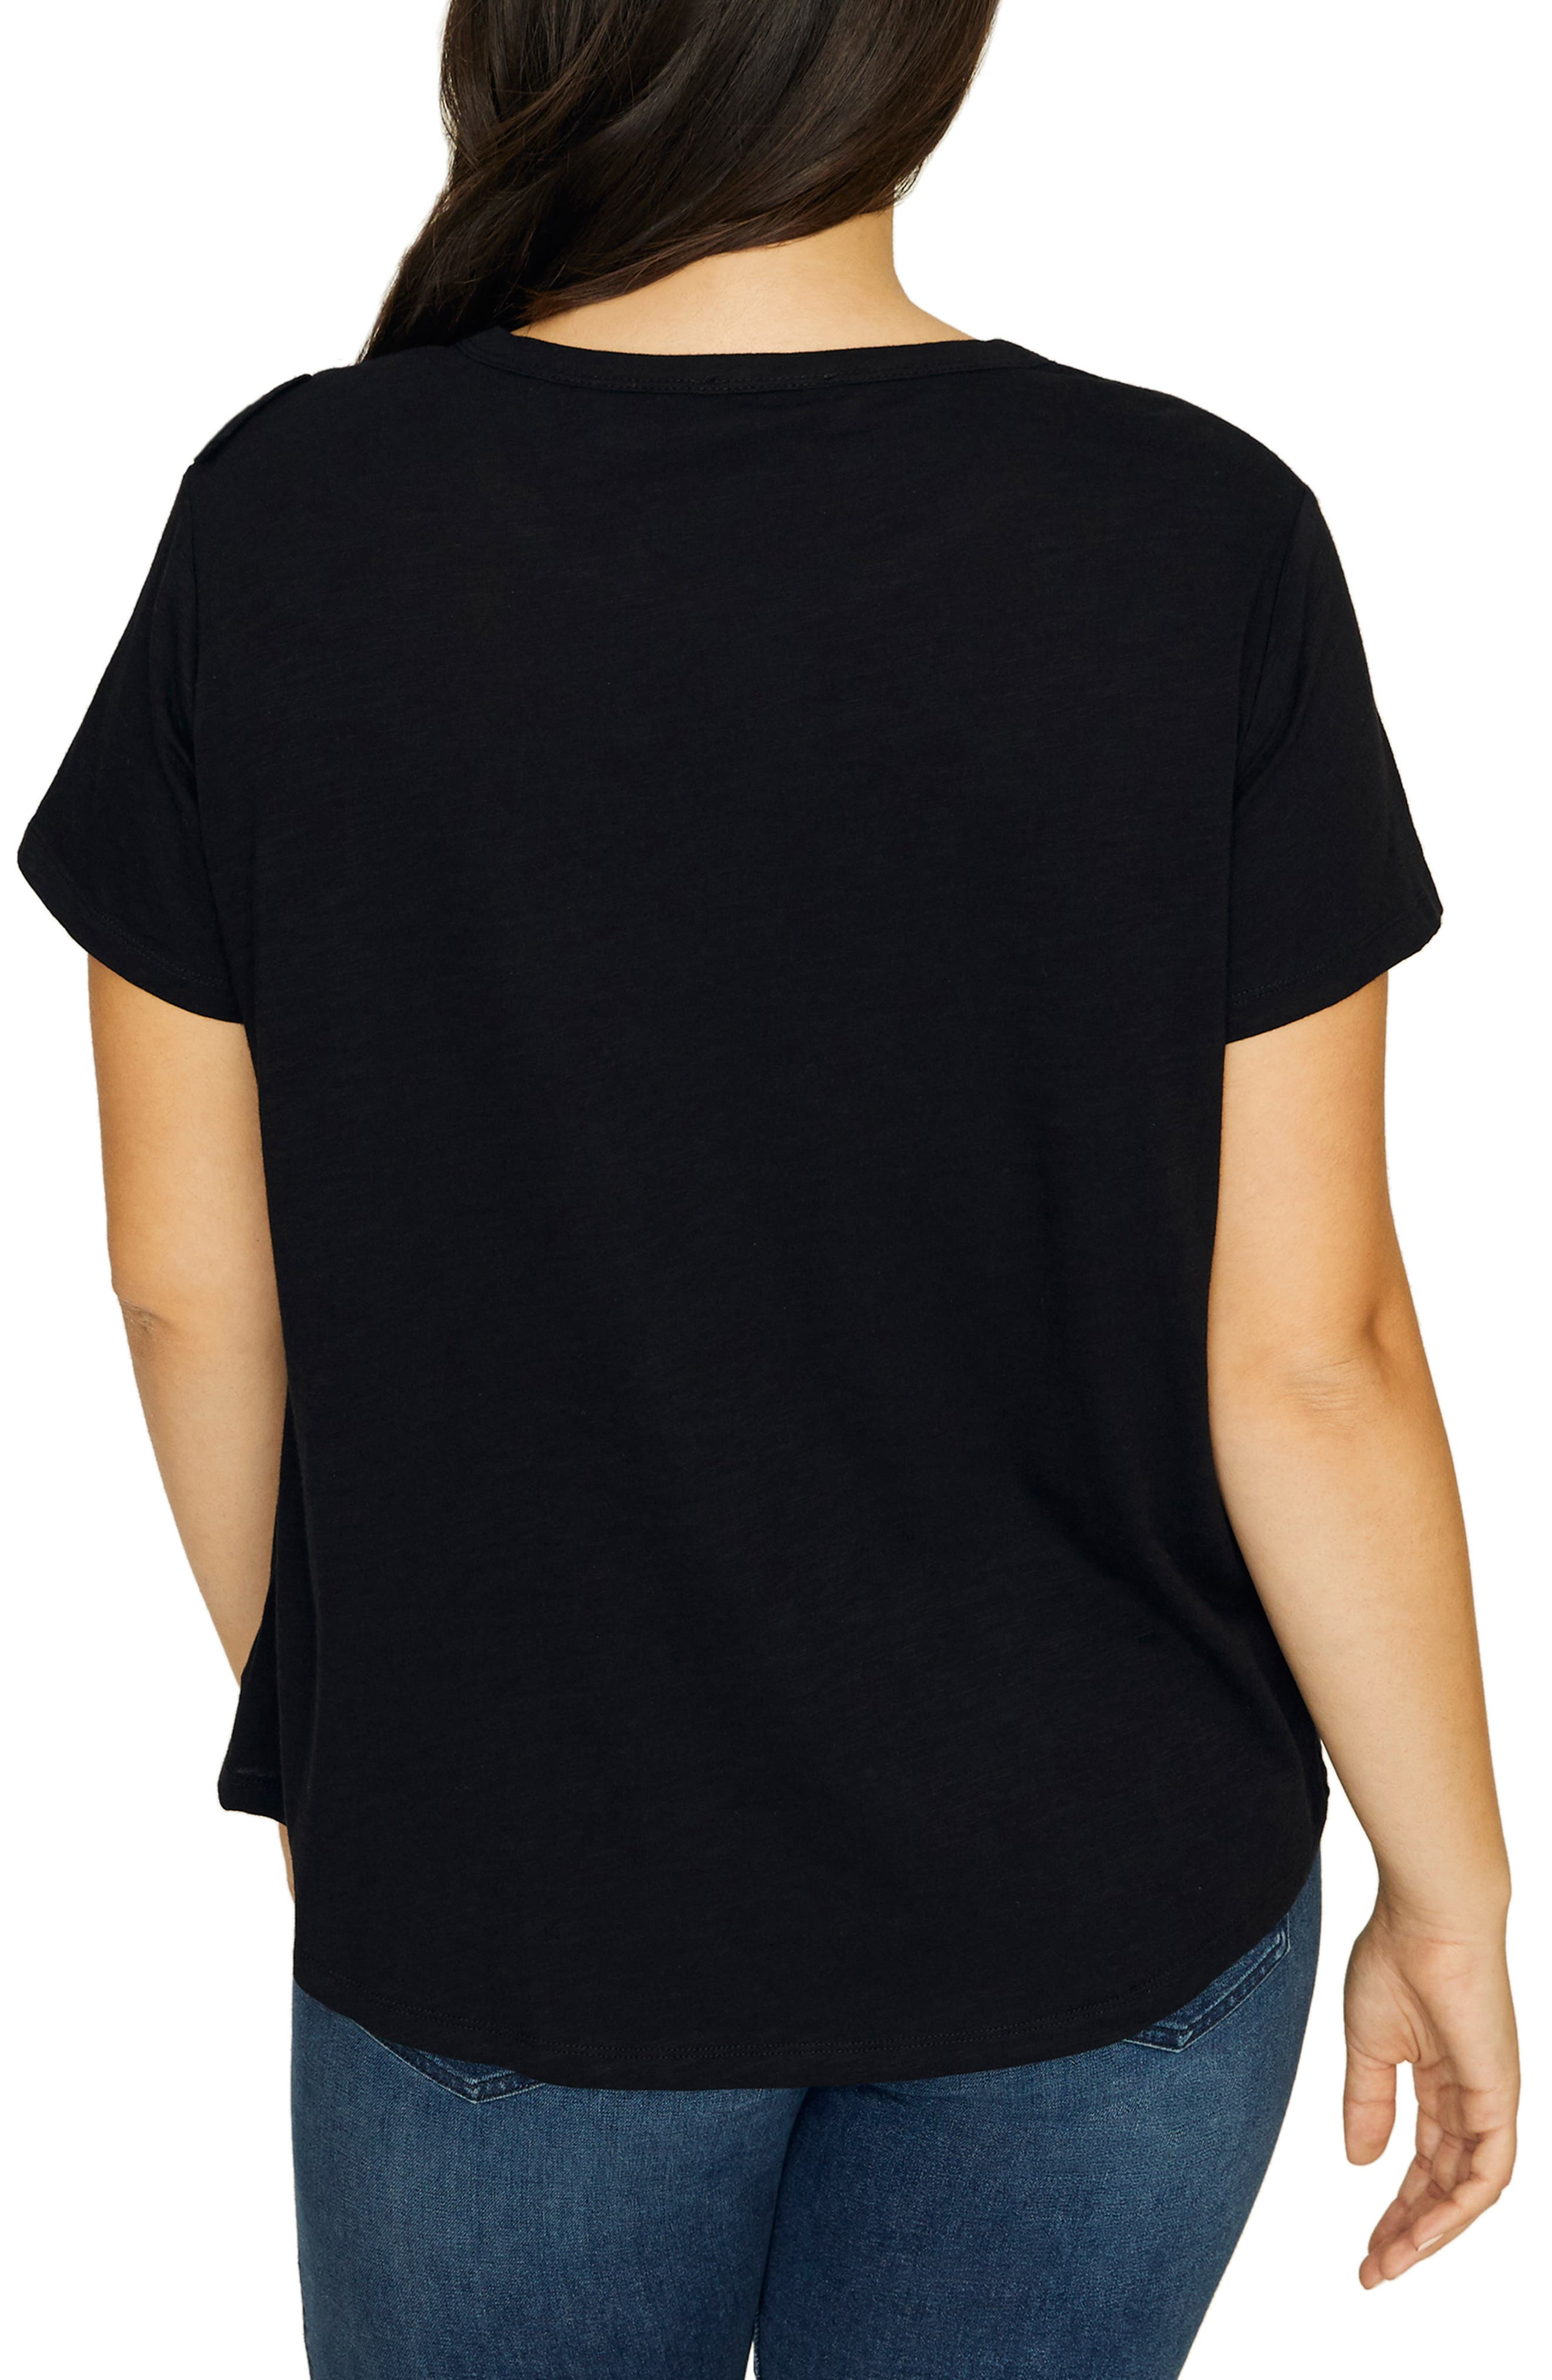 SANCTUARY, Gia Ruffle Trim Tee, Alternate thumbnail 2, color, BLACK